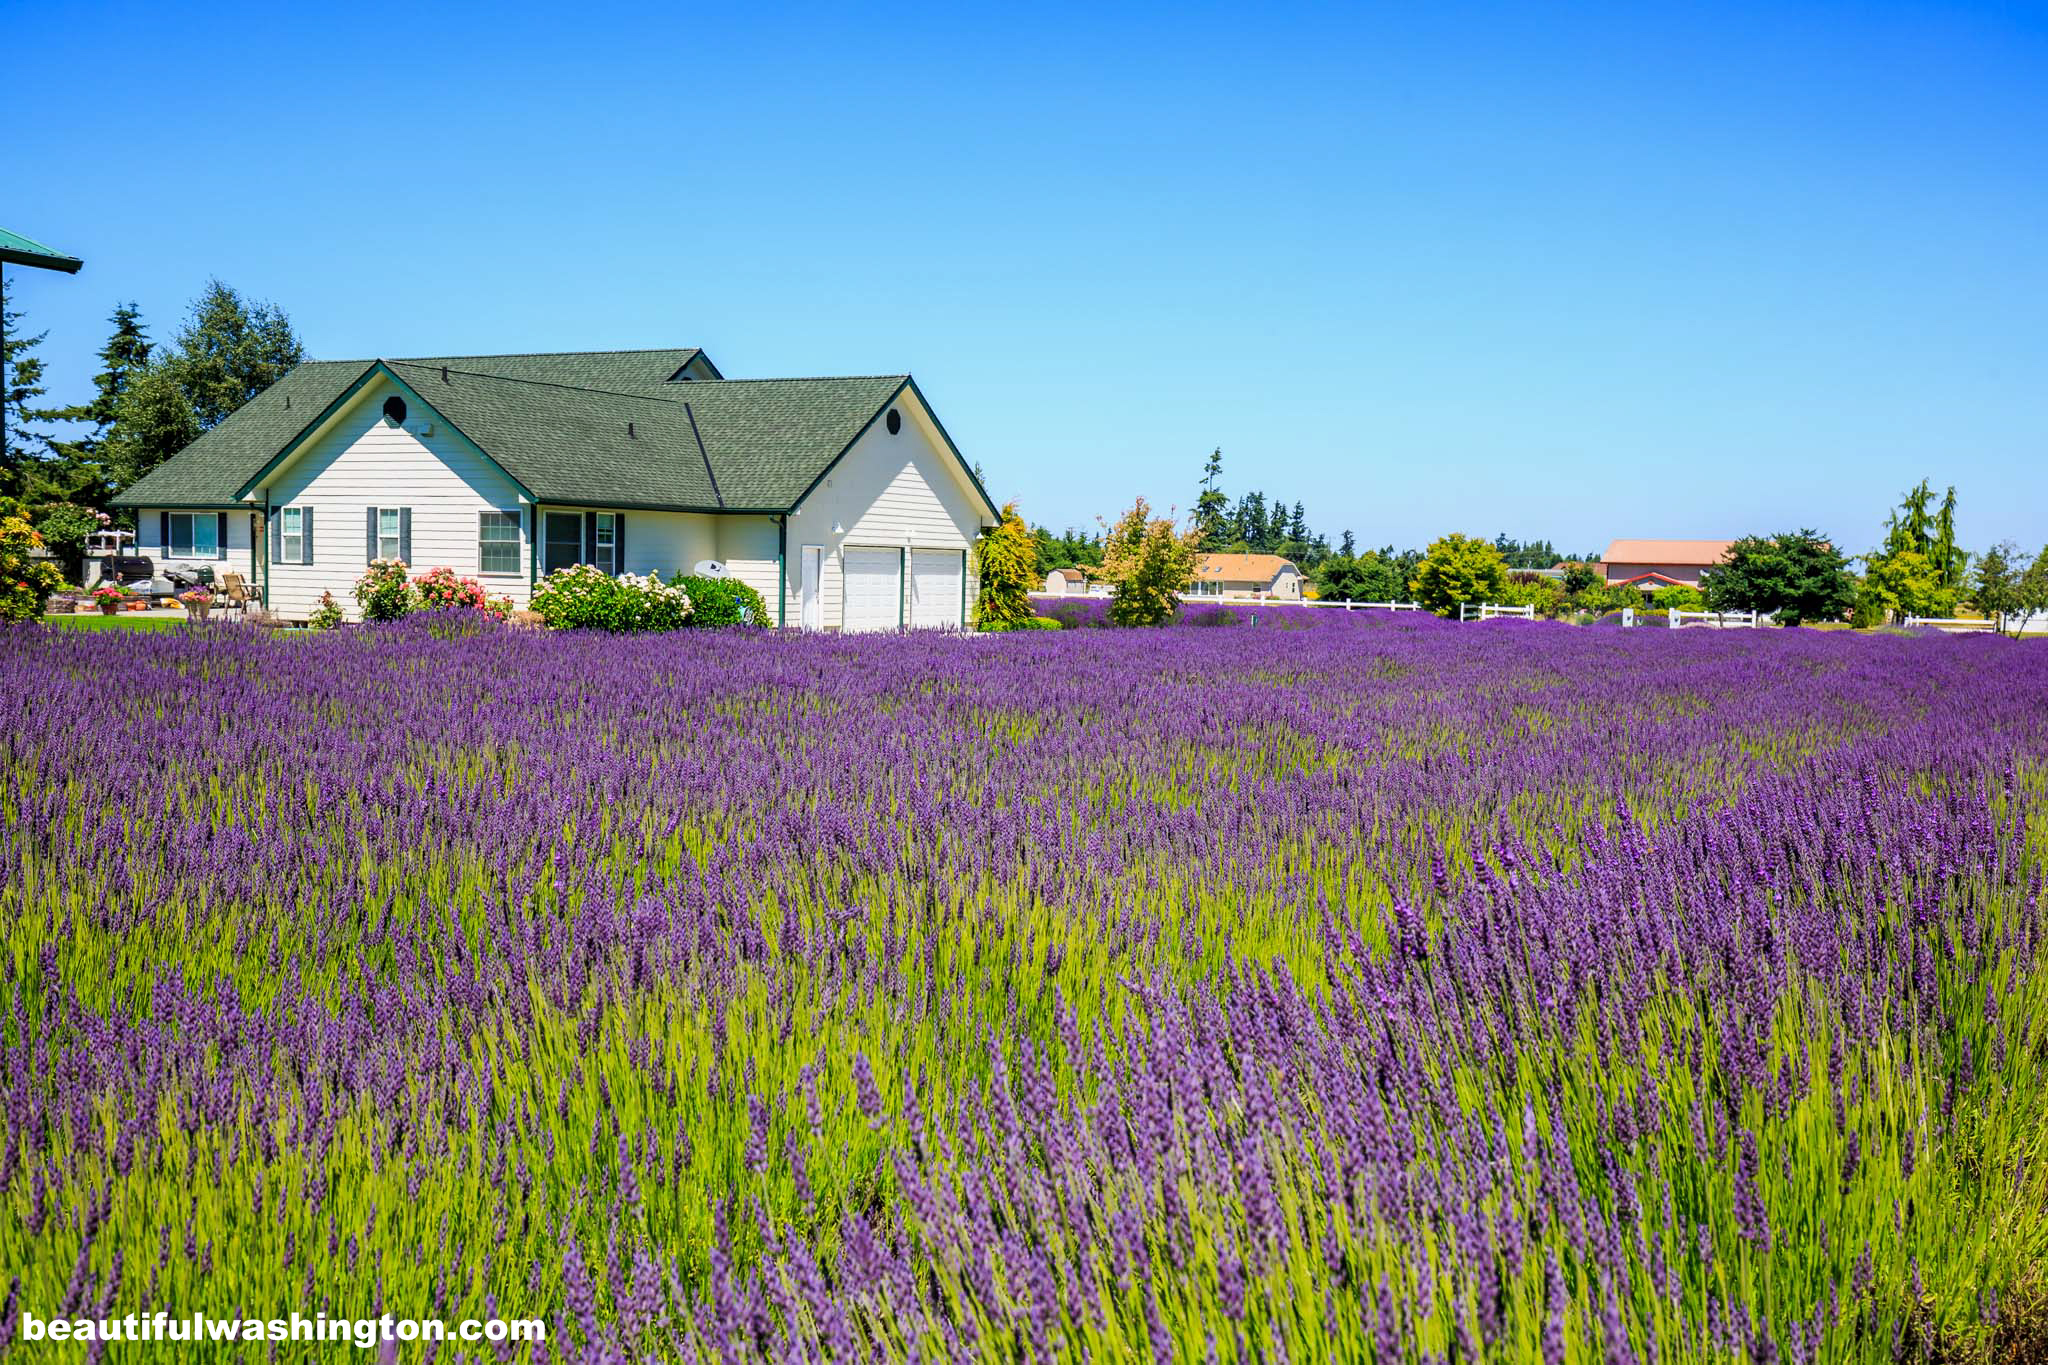 Photo from Clallam County, Oliver's Lavender Farm